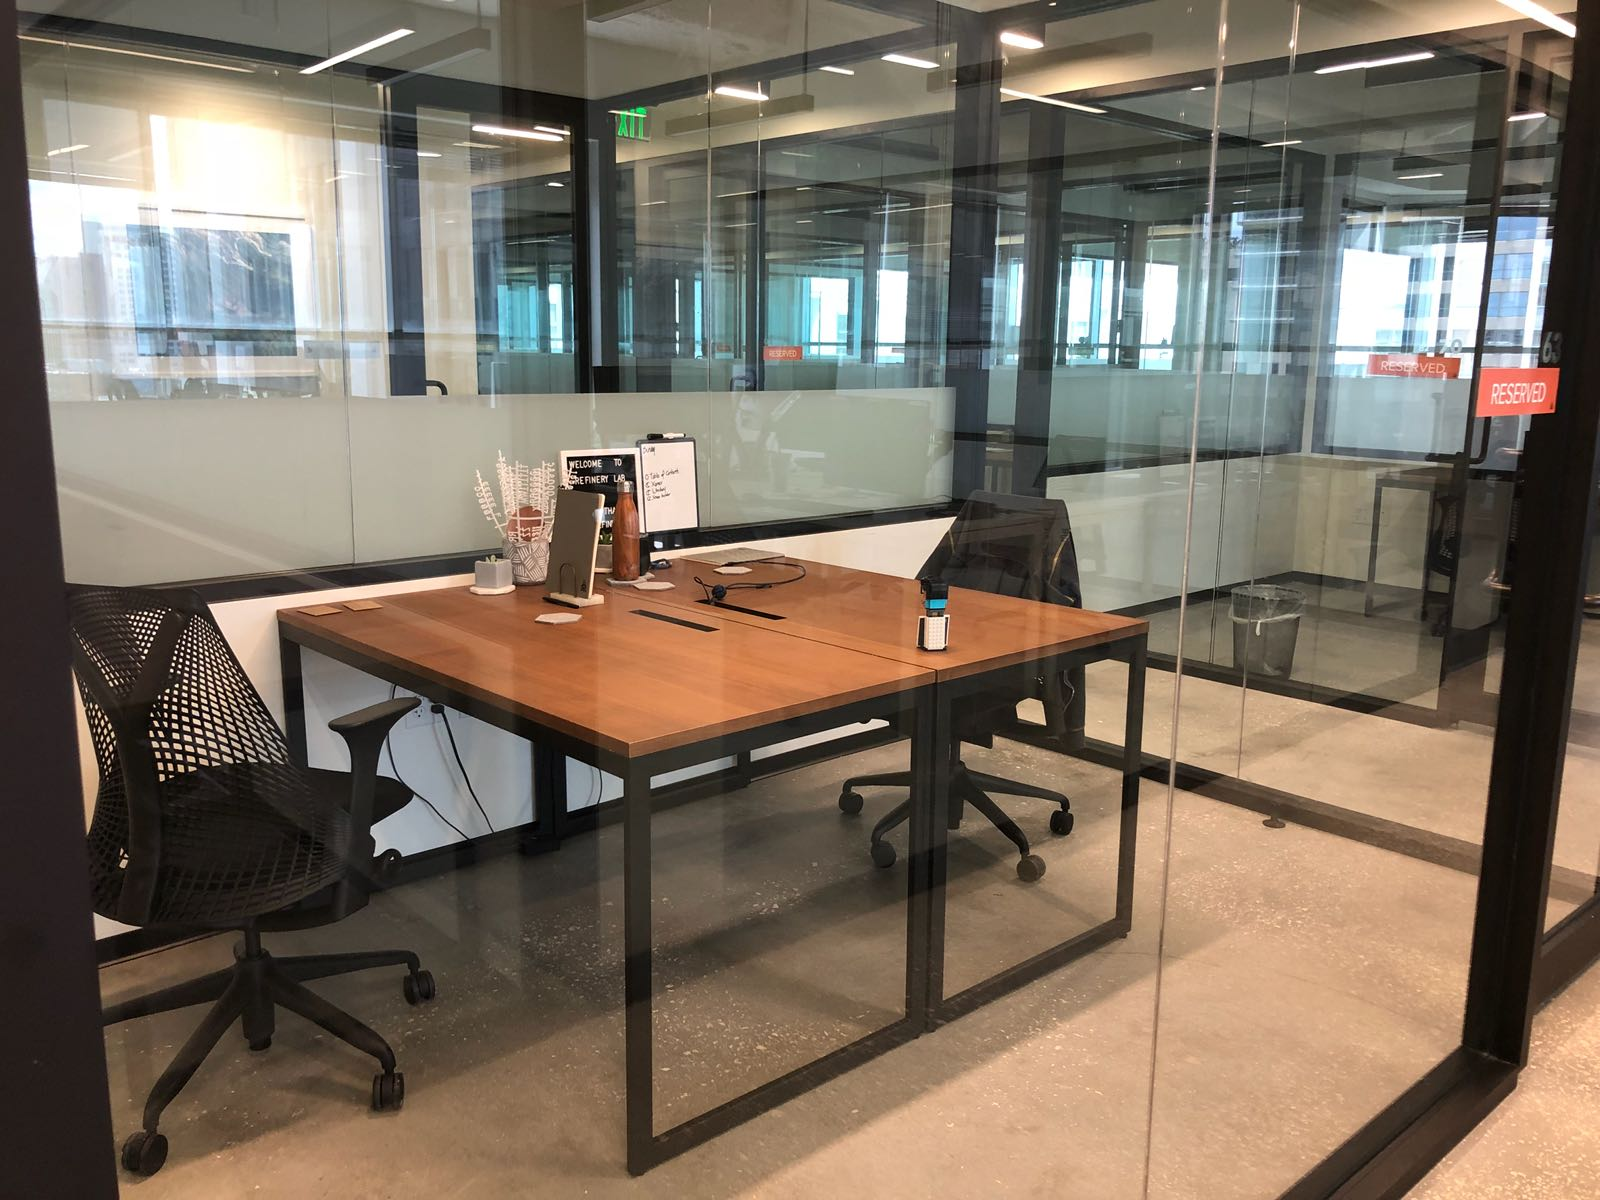 Orlando Bloggers June 2018 Meetup Industrious Orlando co-working space